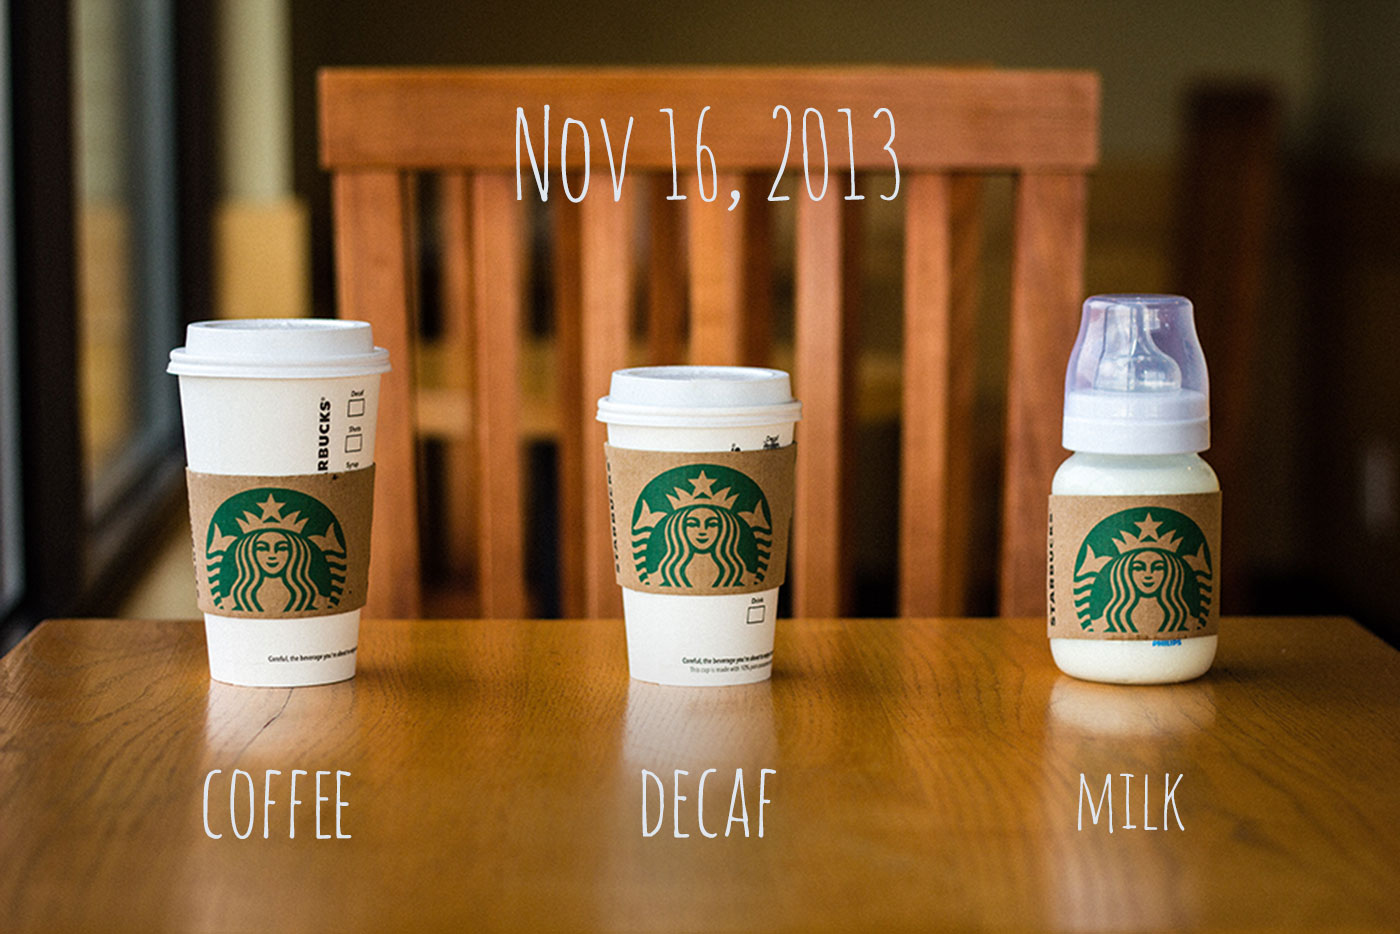 Coffee. Decaf. Milk. Coming Nov 16, 2013